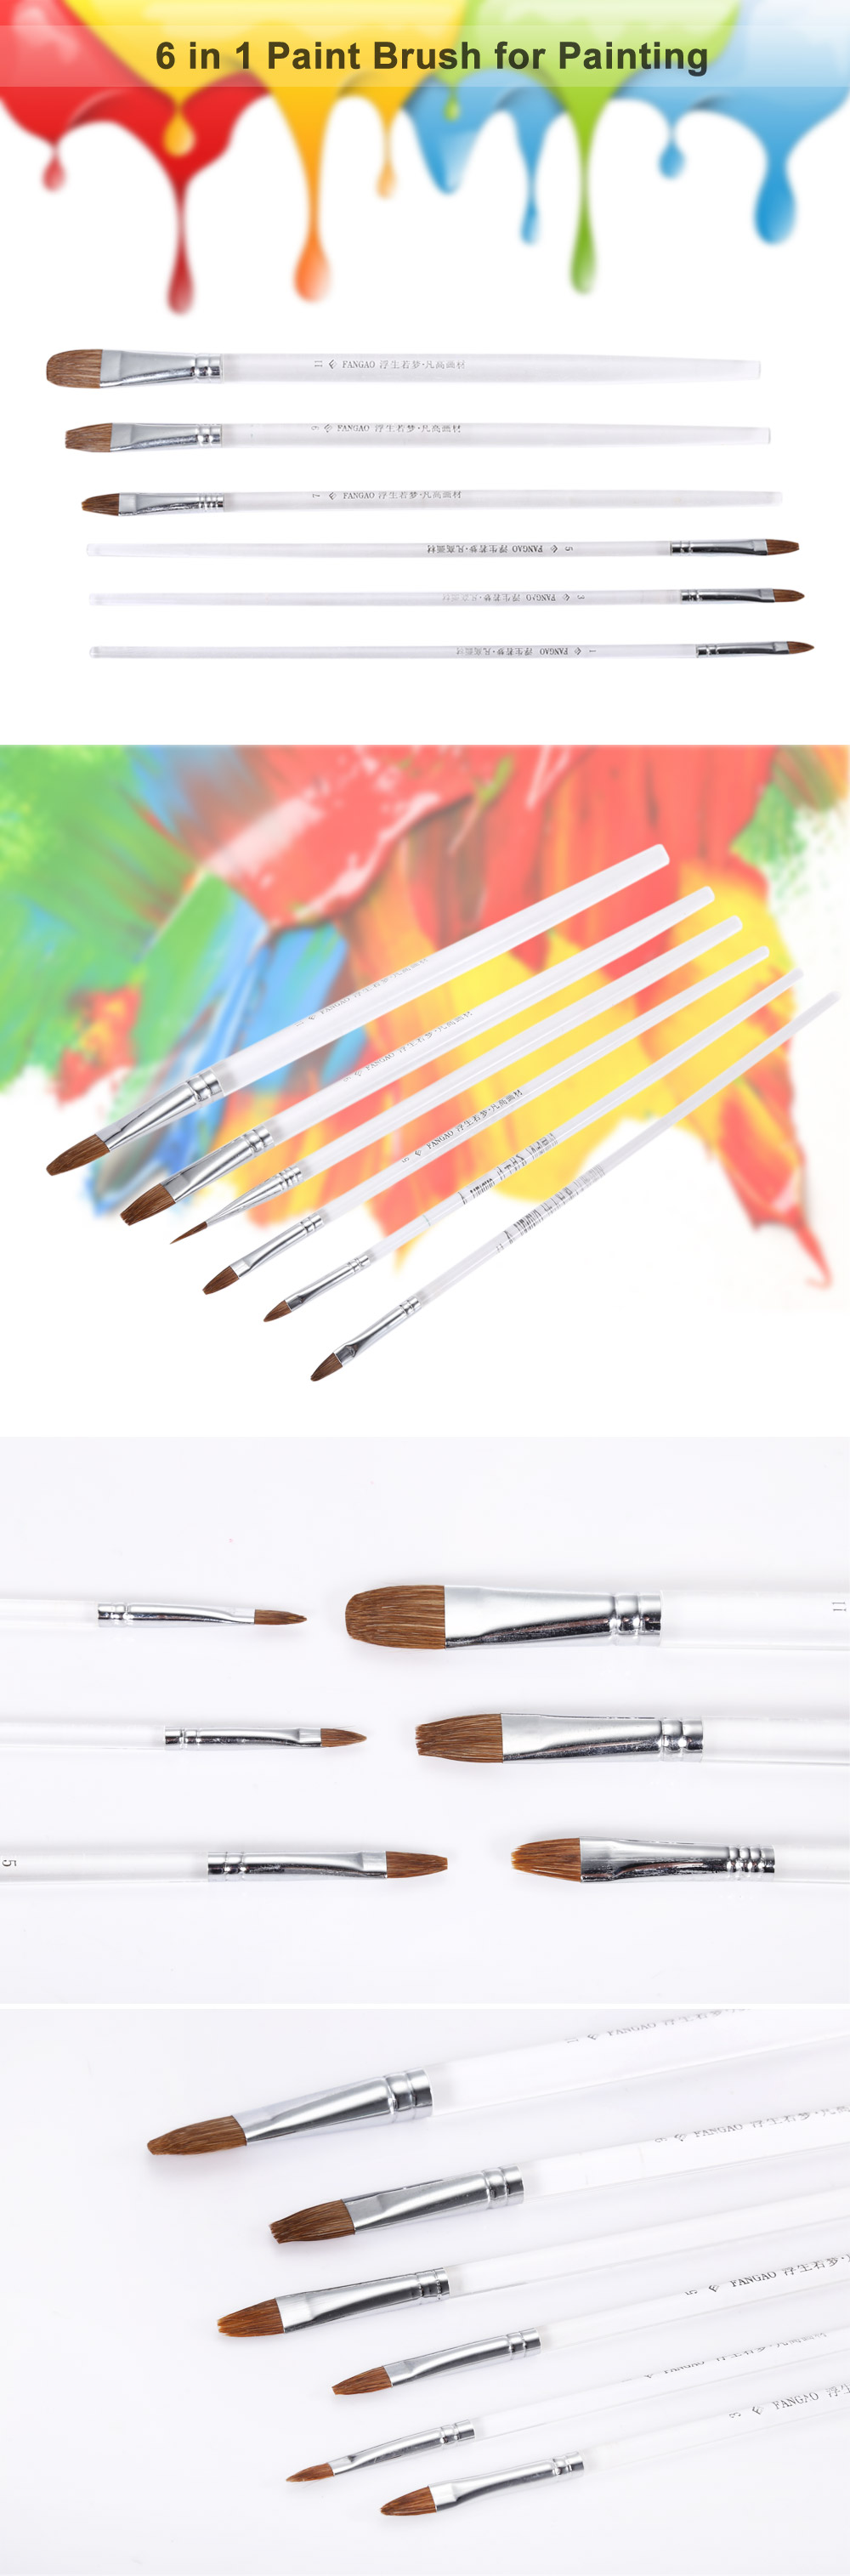 Creative 6 in 1 Painting Brush Drawing Tool